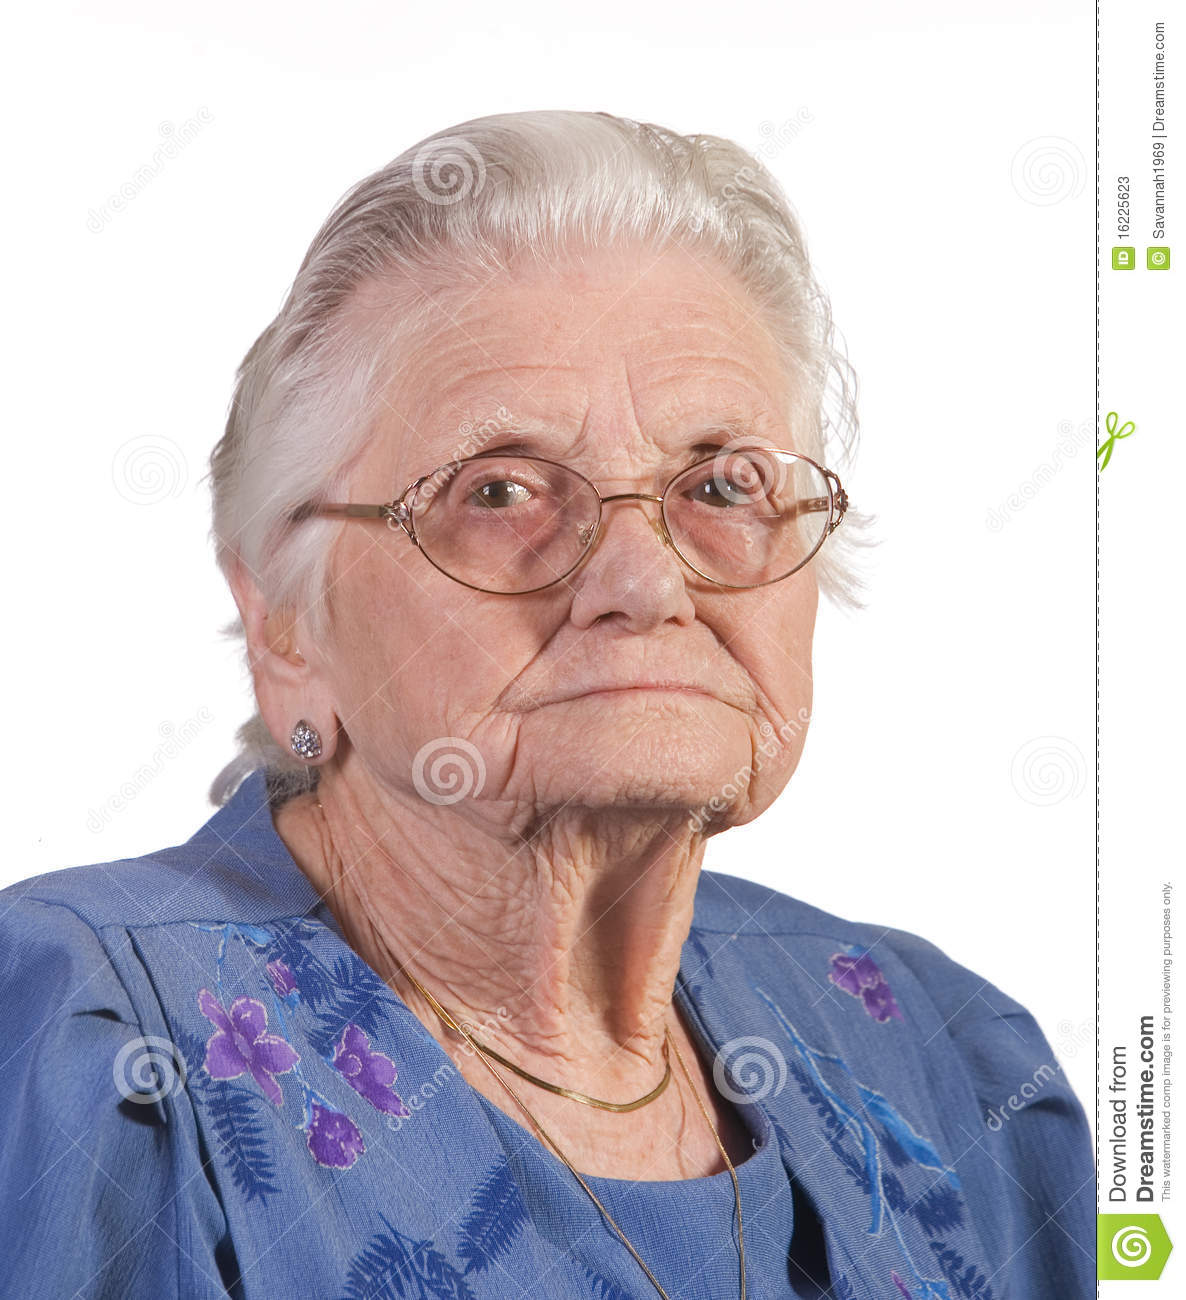 Image result for old woman with glasses